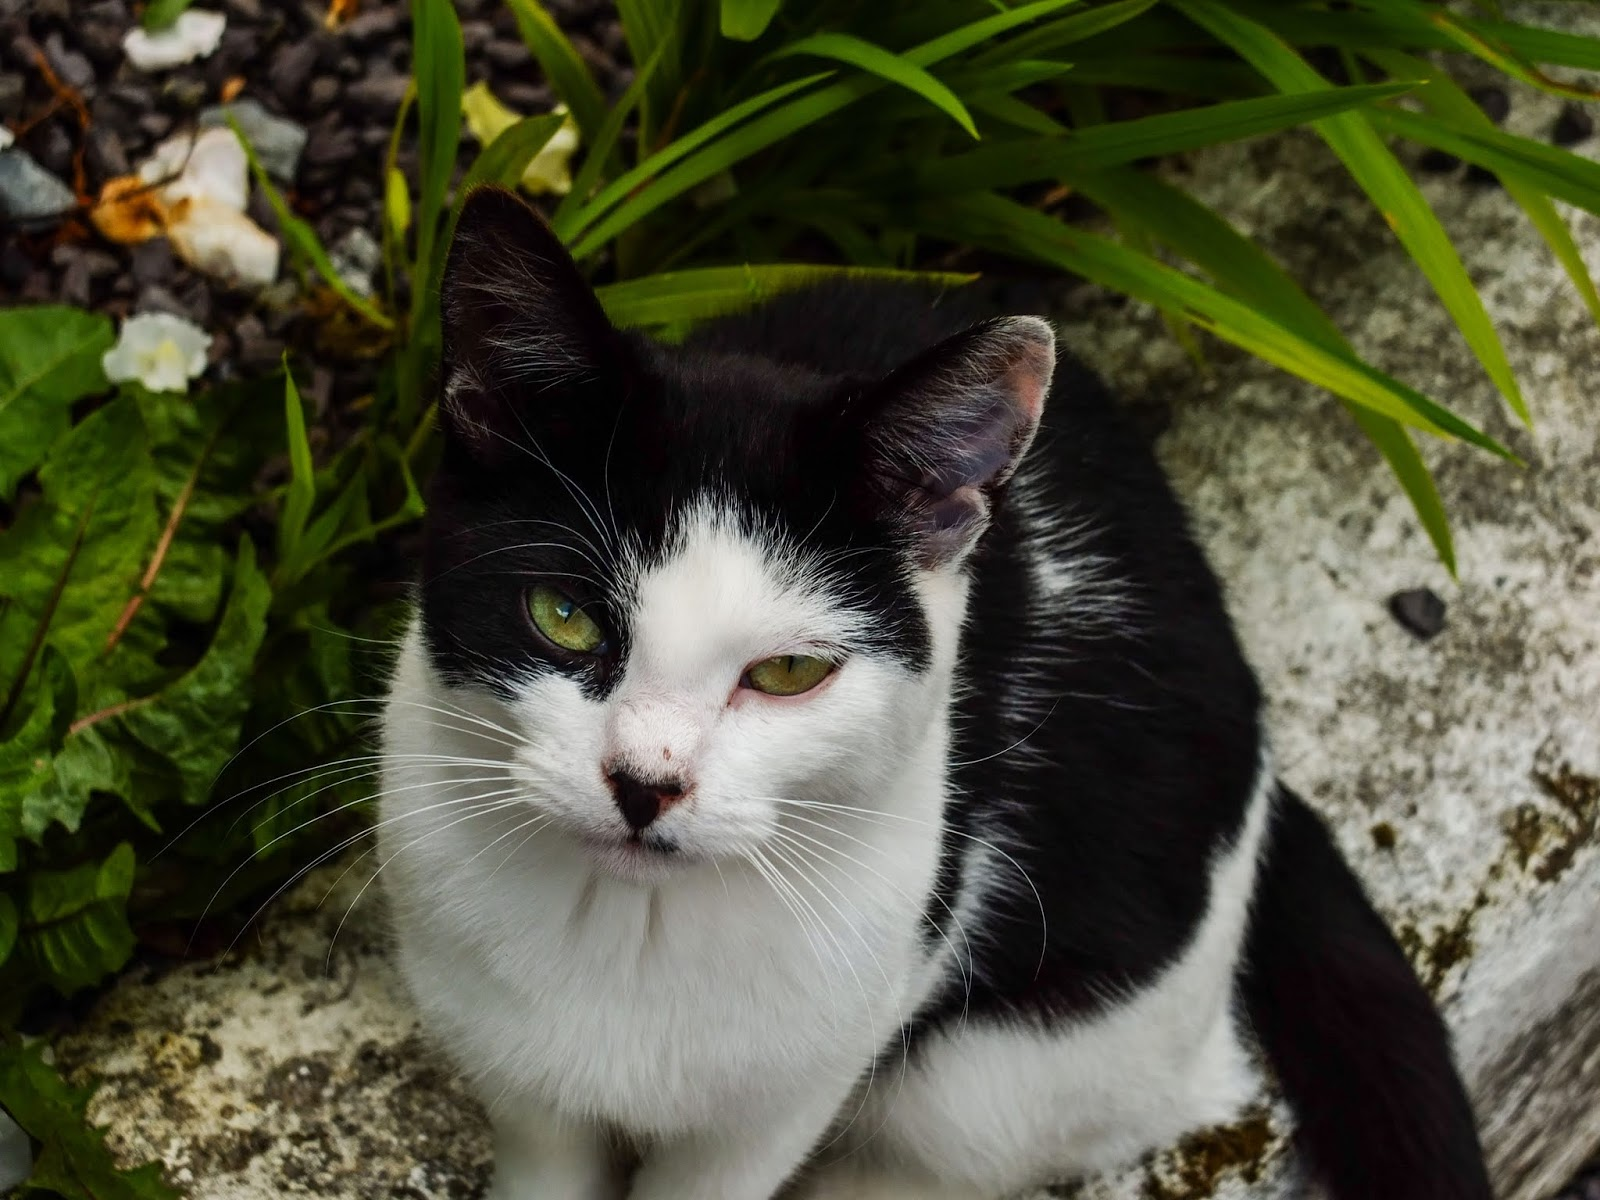 A black and white cat with green eyes sitting on the wall.